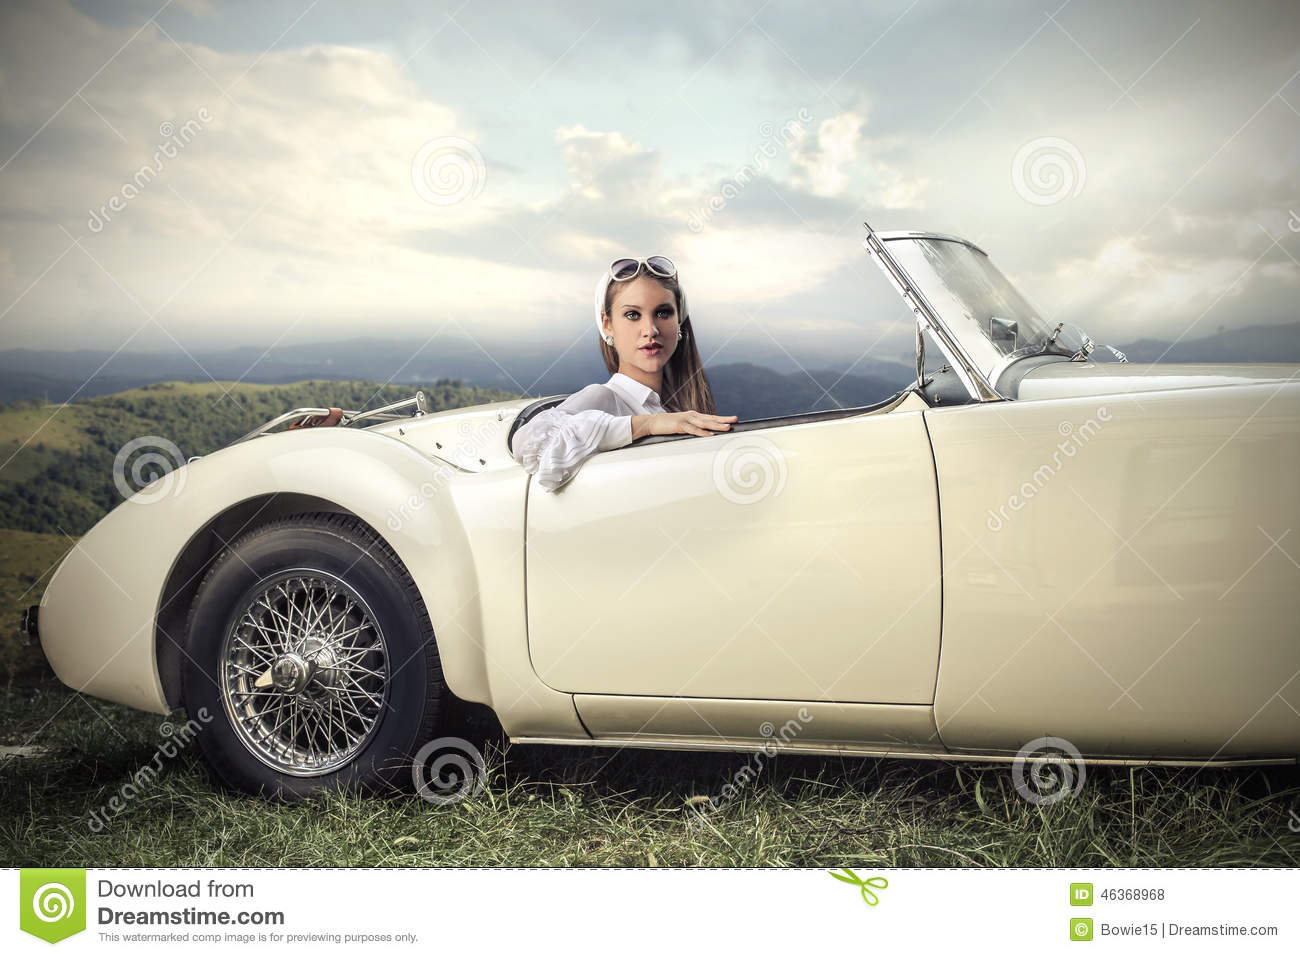 Woman in a vintage car stock photo. Image of young, light - 46368968